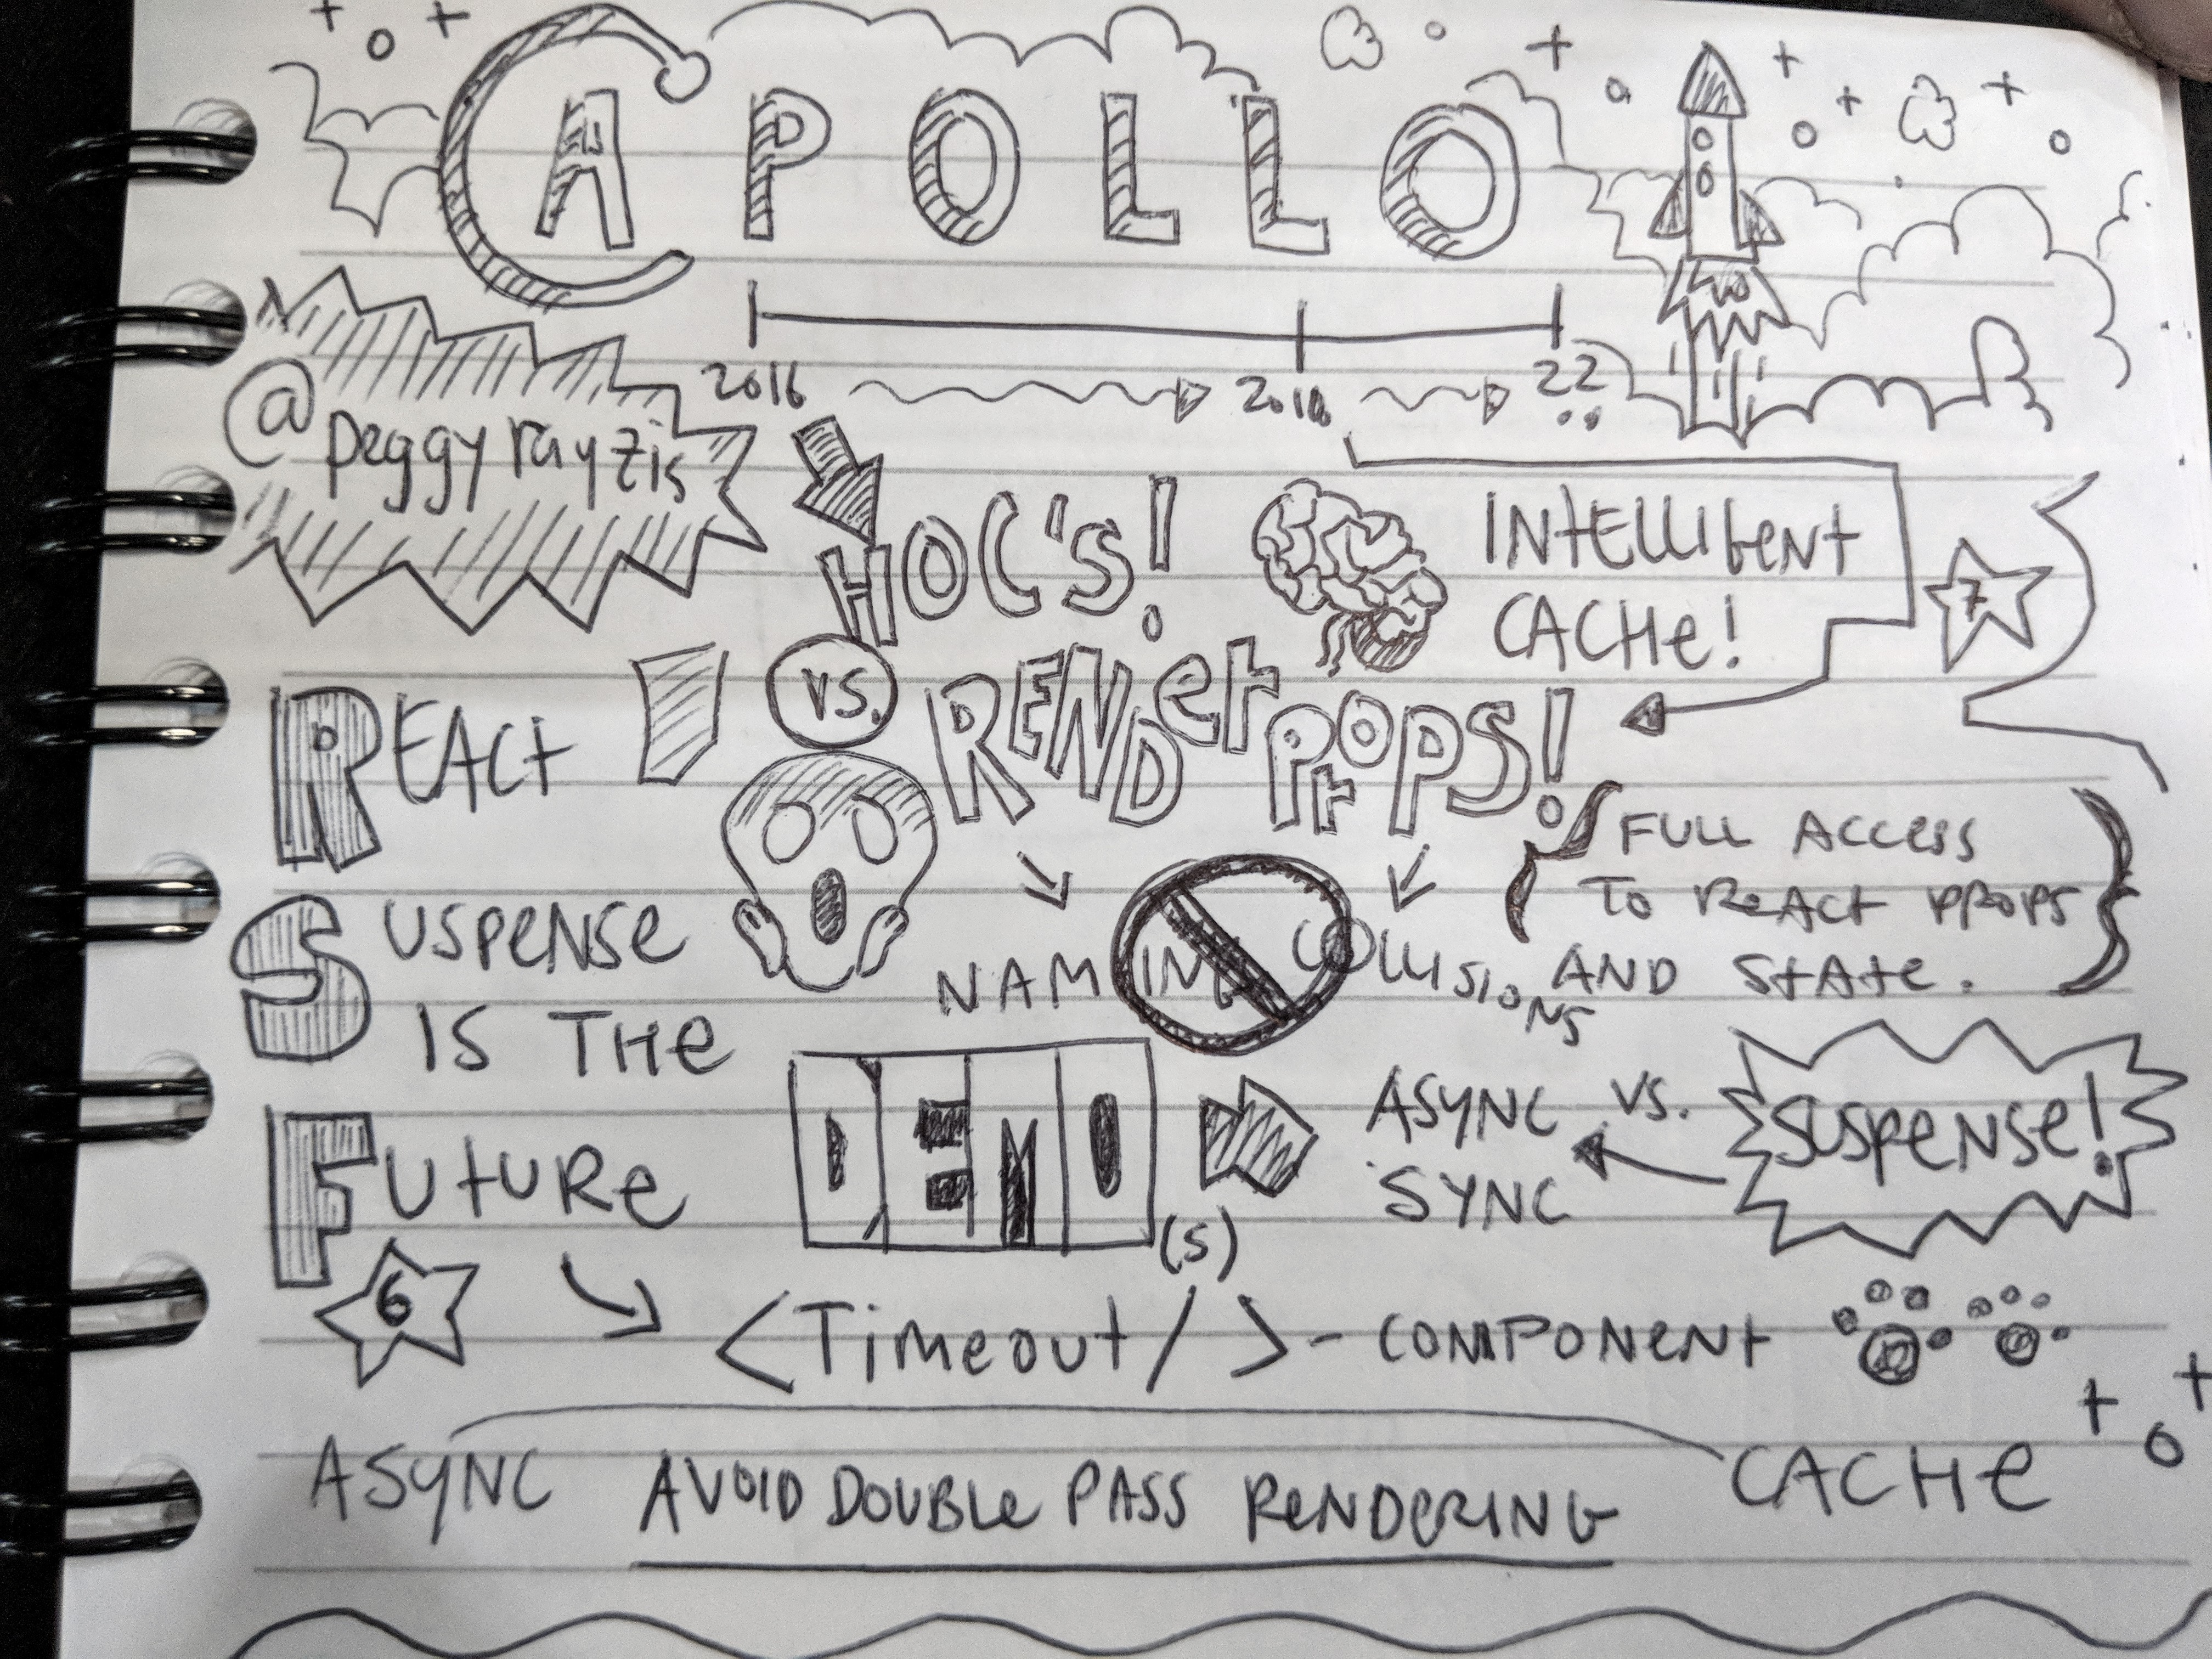 Notes on Peggy Rayzis's talk on Apollo